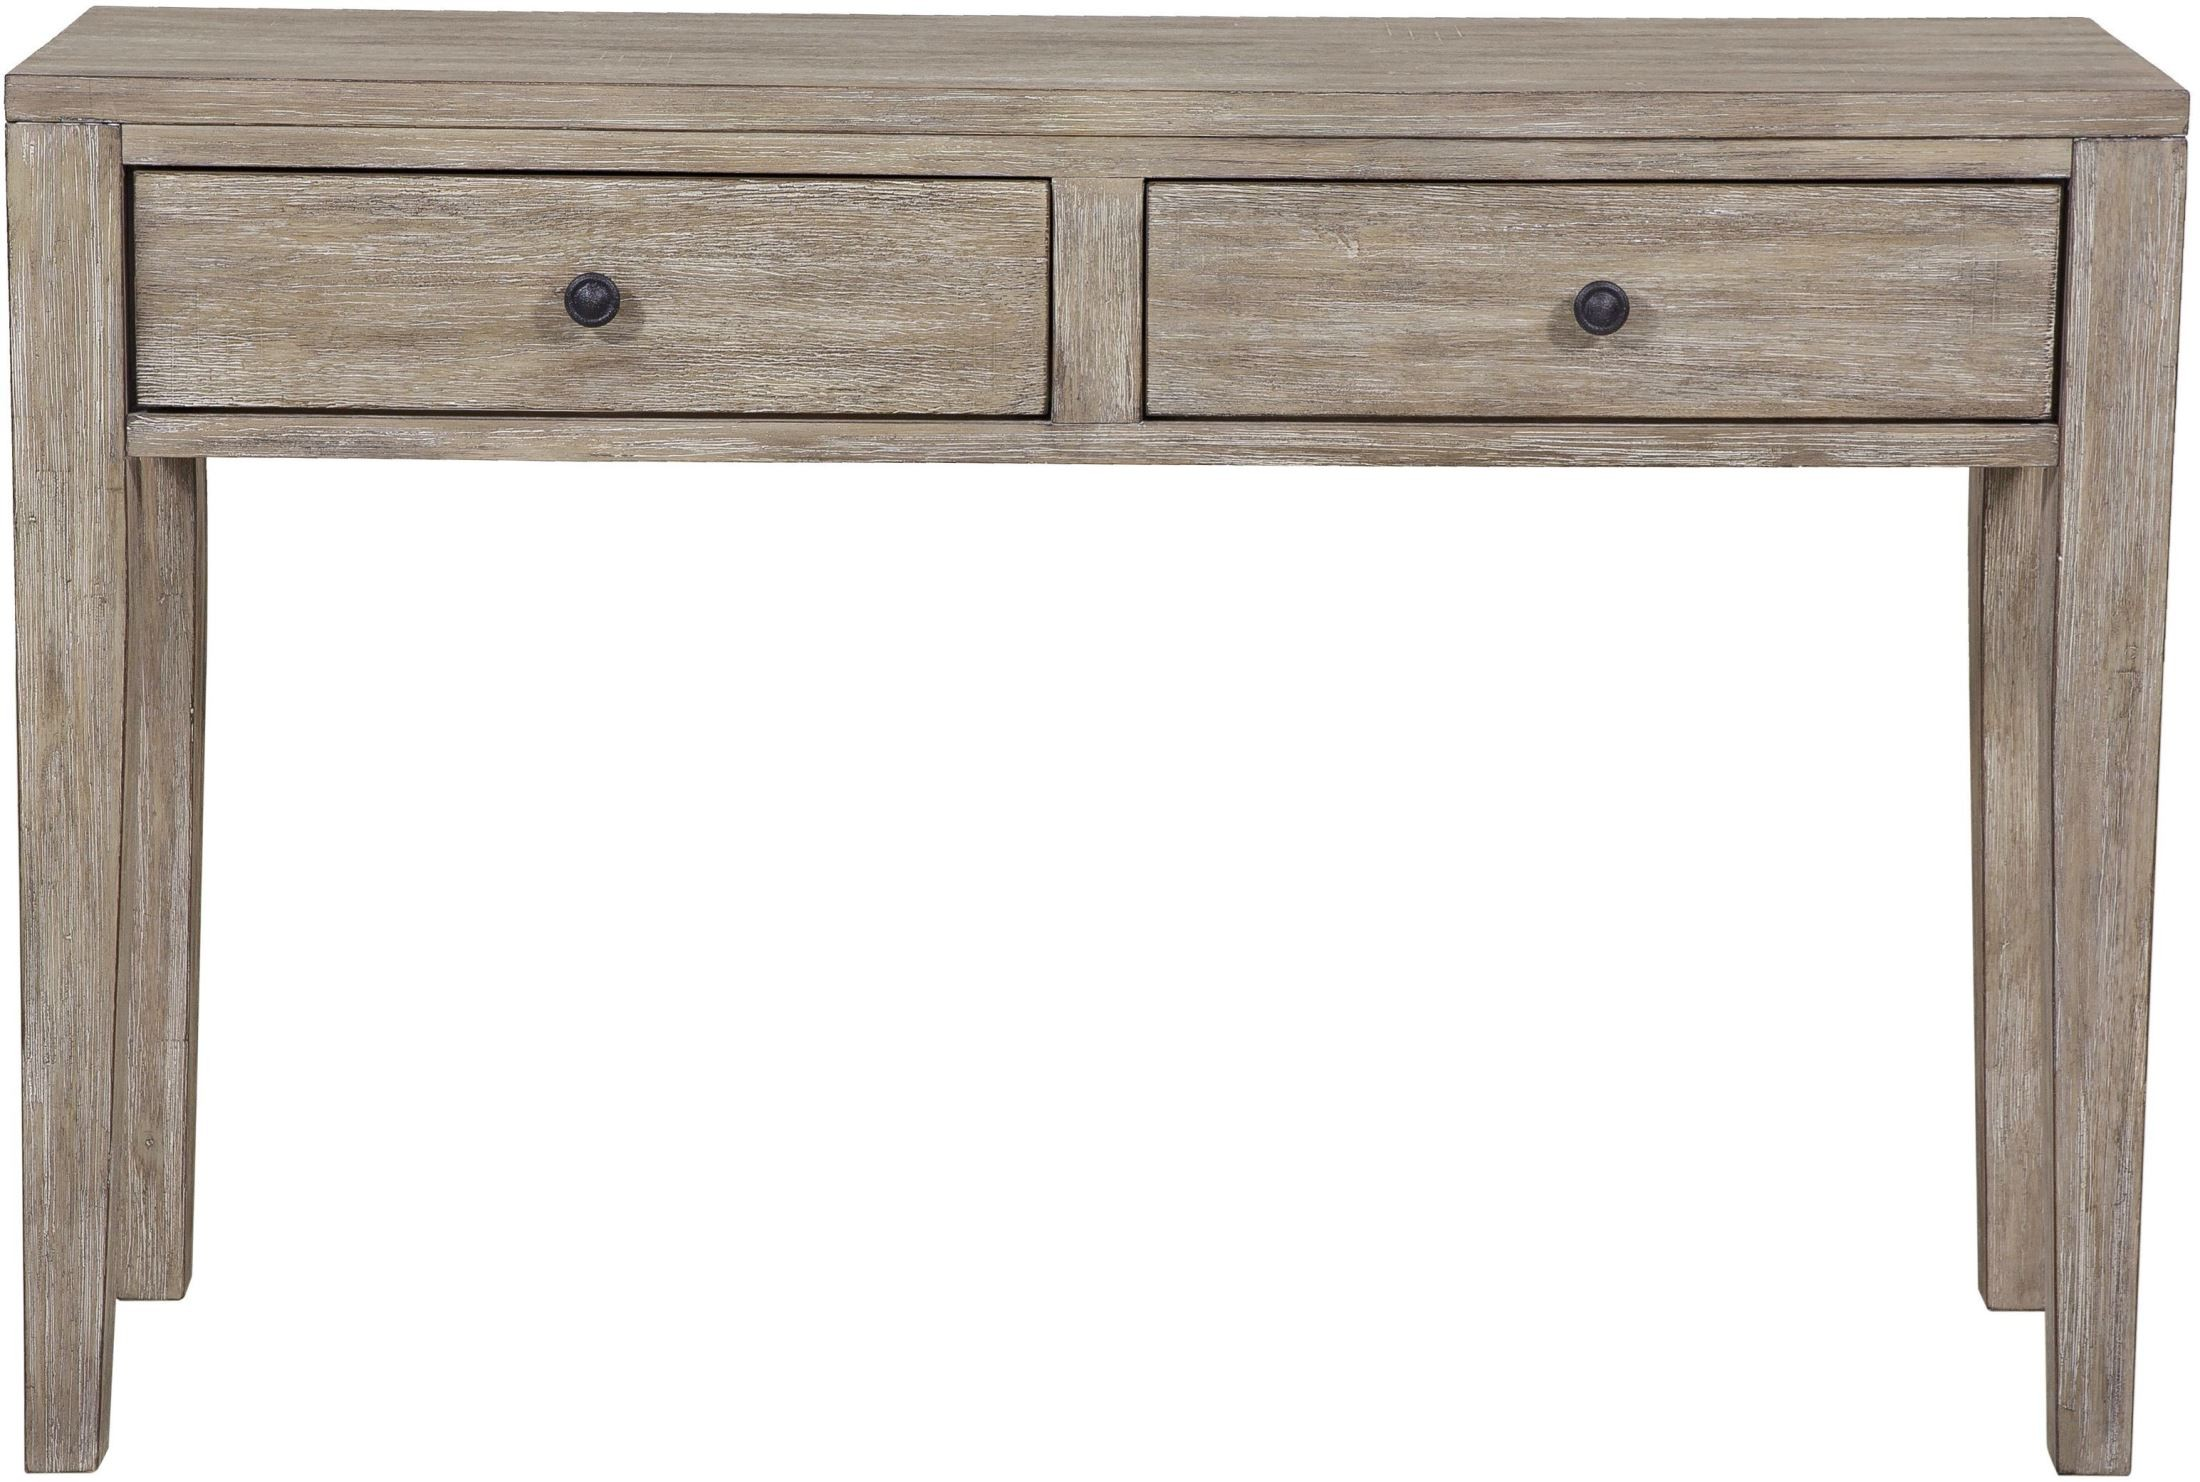 Wood Storage Console Tables ~ Distressed wood storage accent console table from pulaski